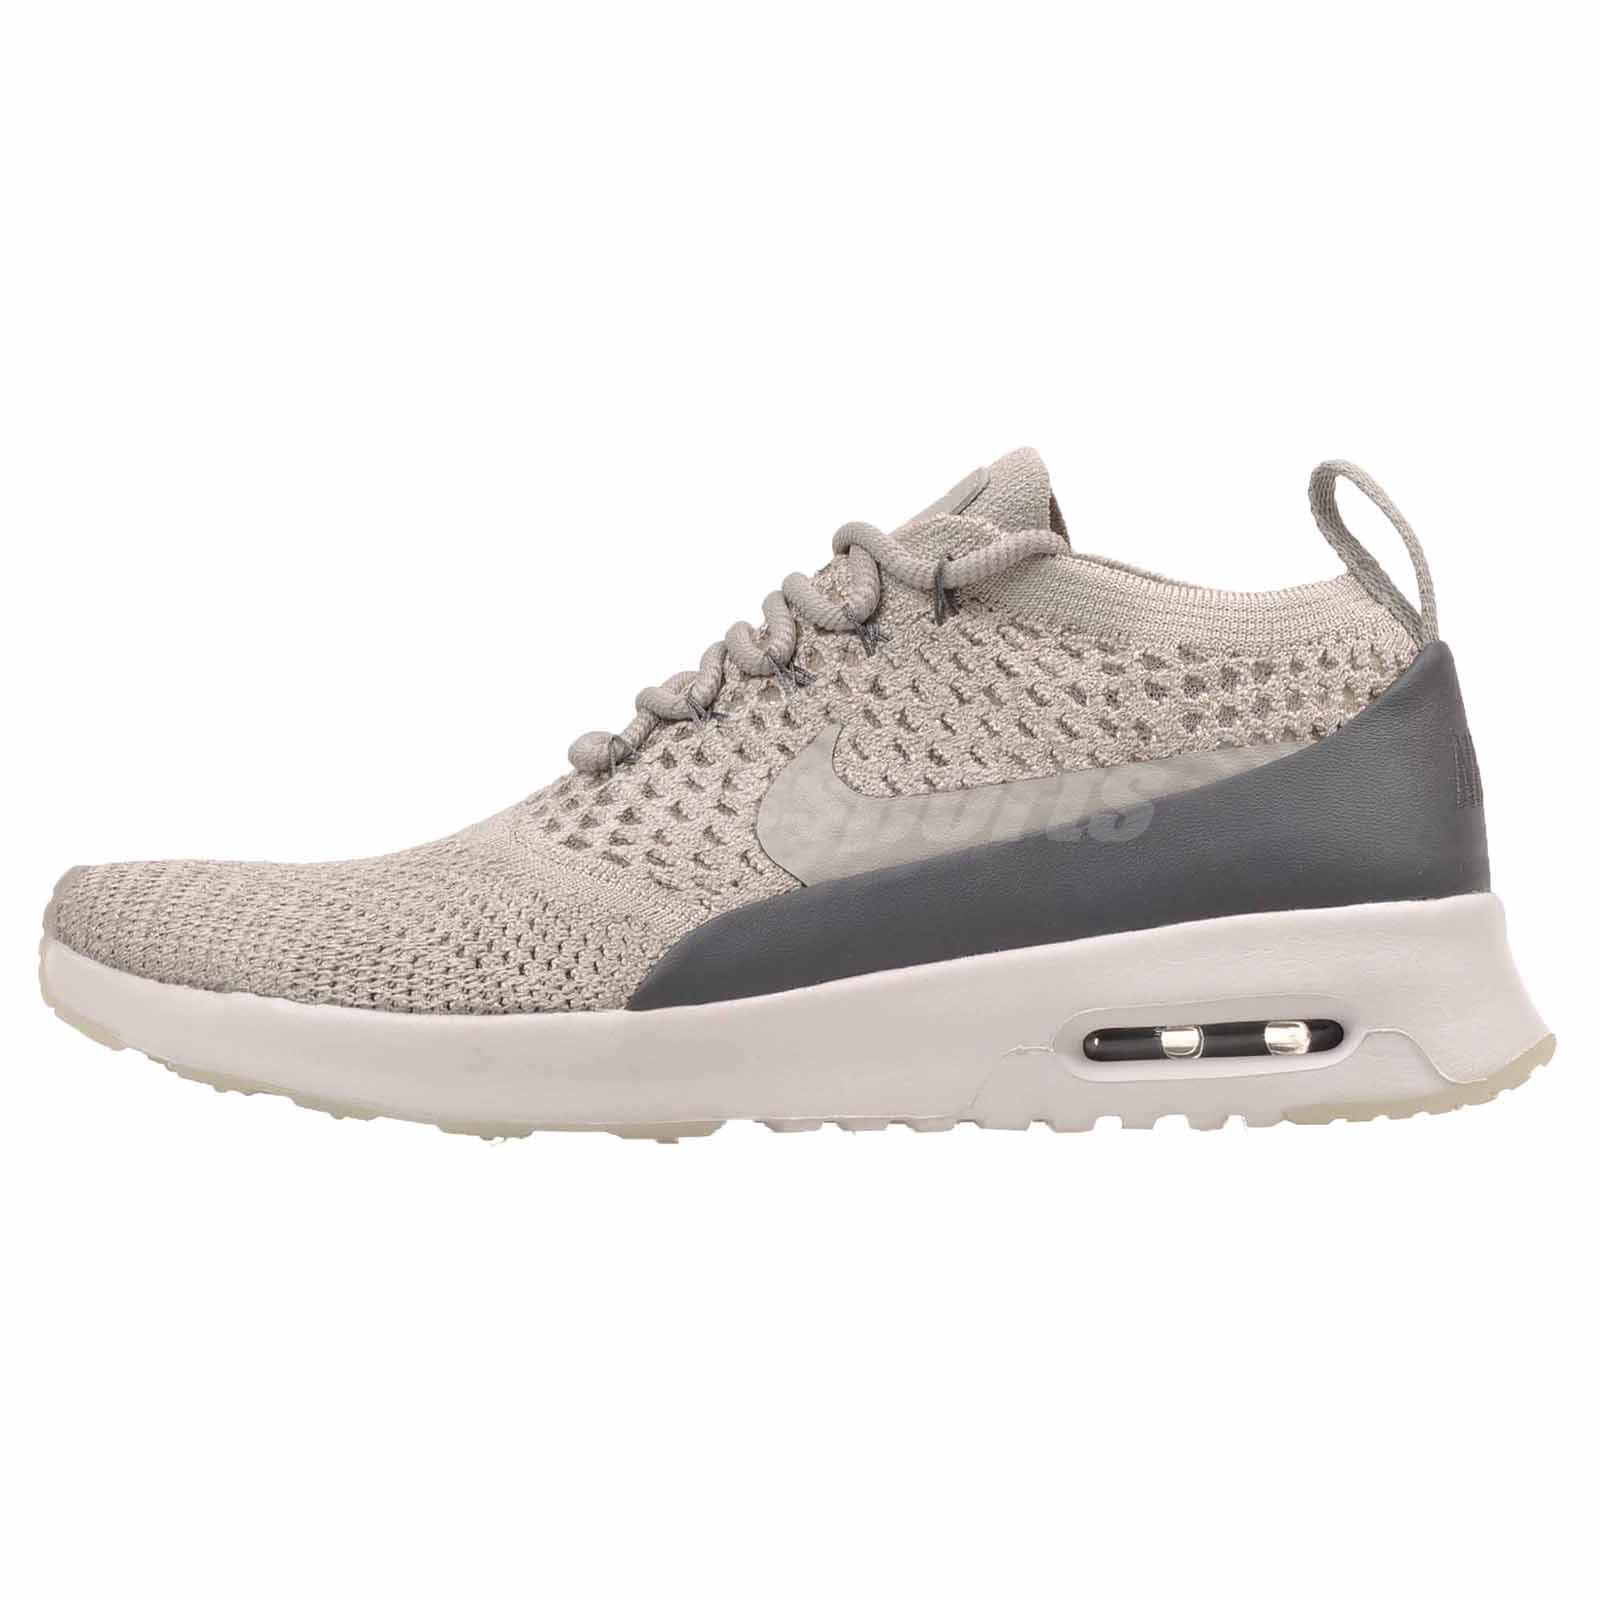 4a9e2b56b3dba Details about Nike W Nike Air Max Thea Ultra FK Running Womens Shoes Pale  Grey 881175-005